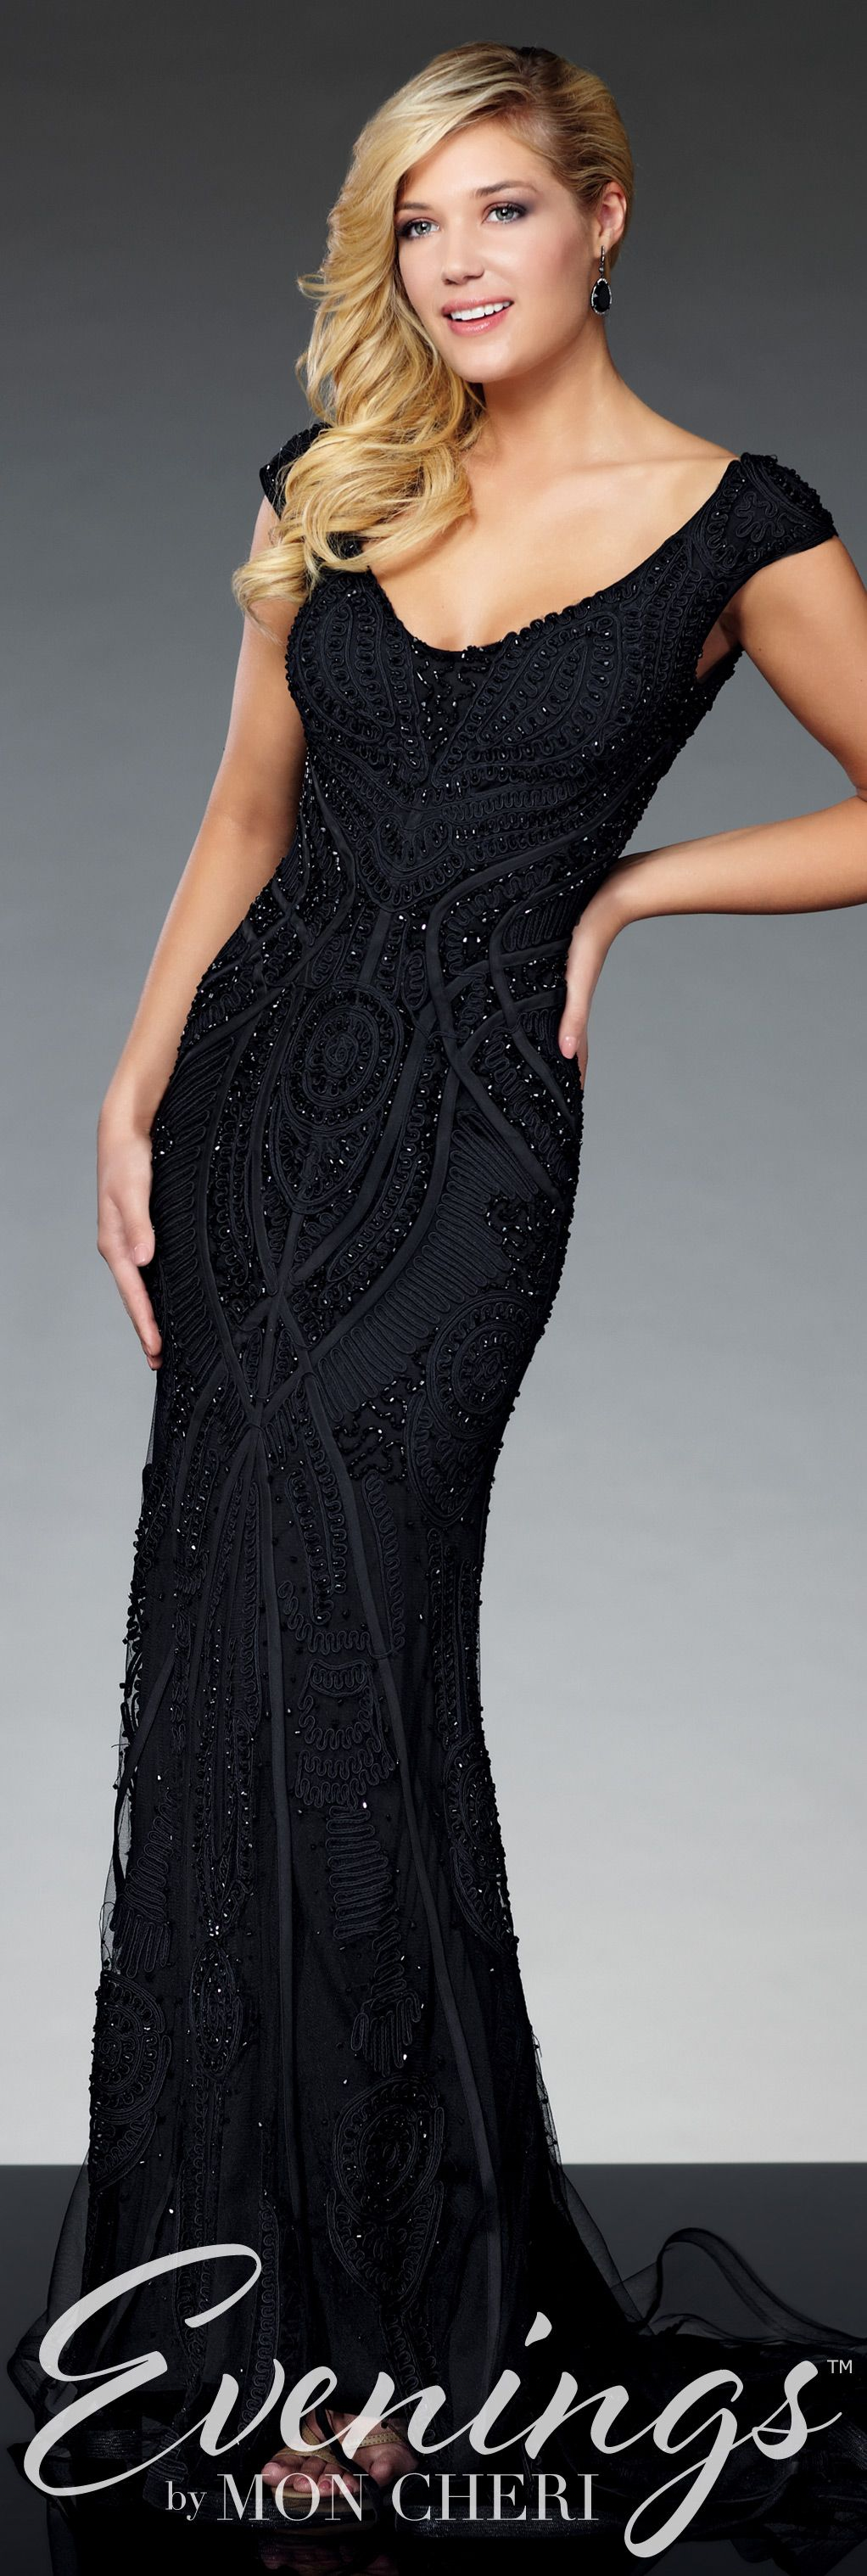 Wedding guest dresses fall black tie and black tie